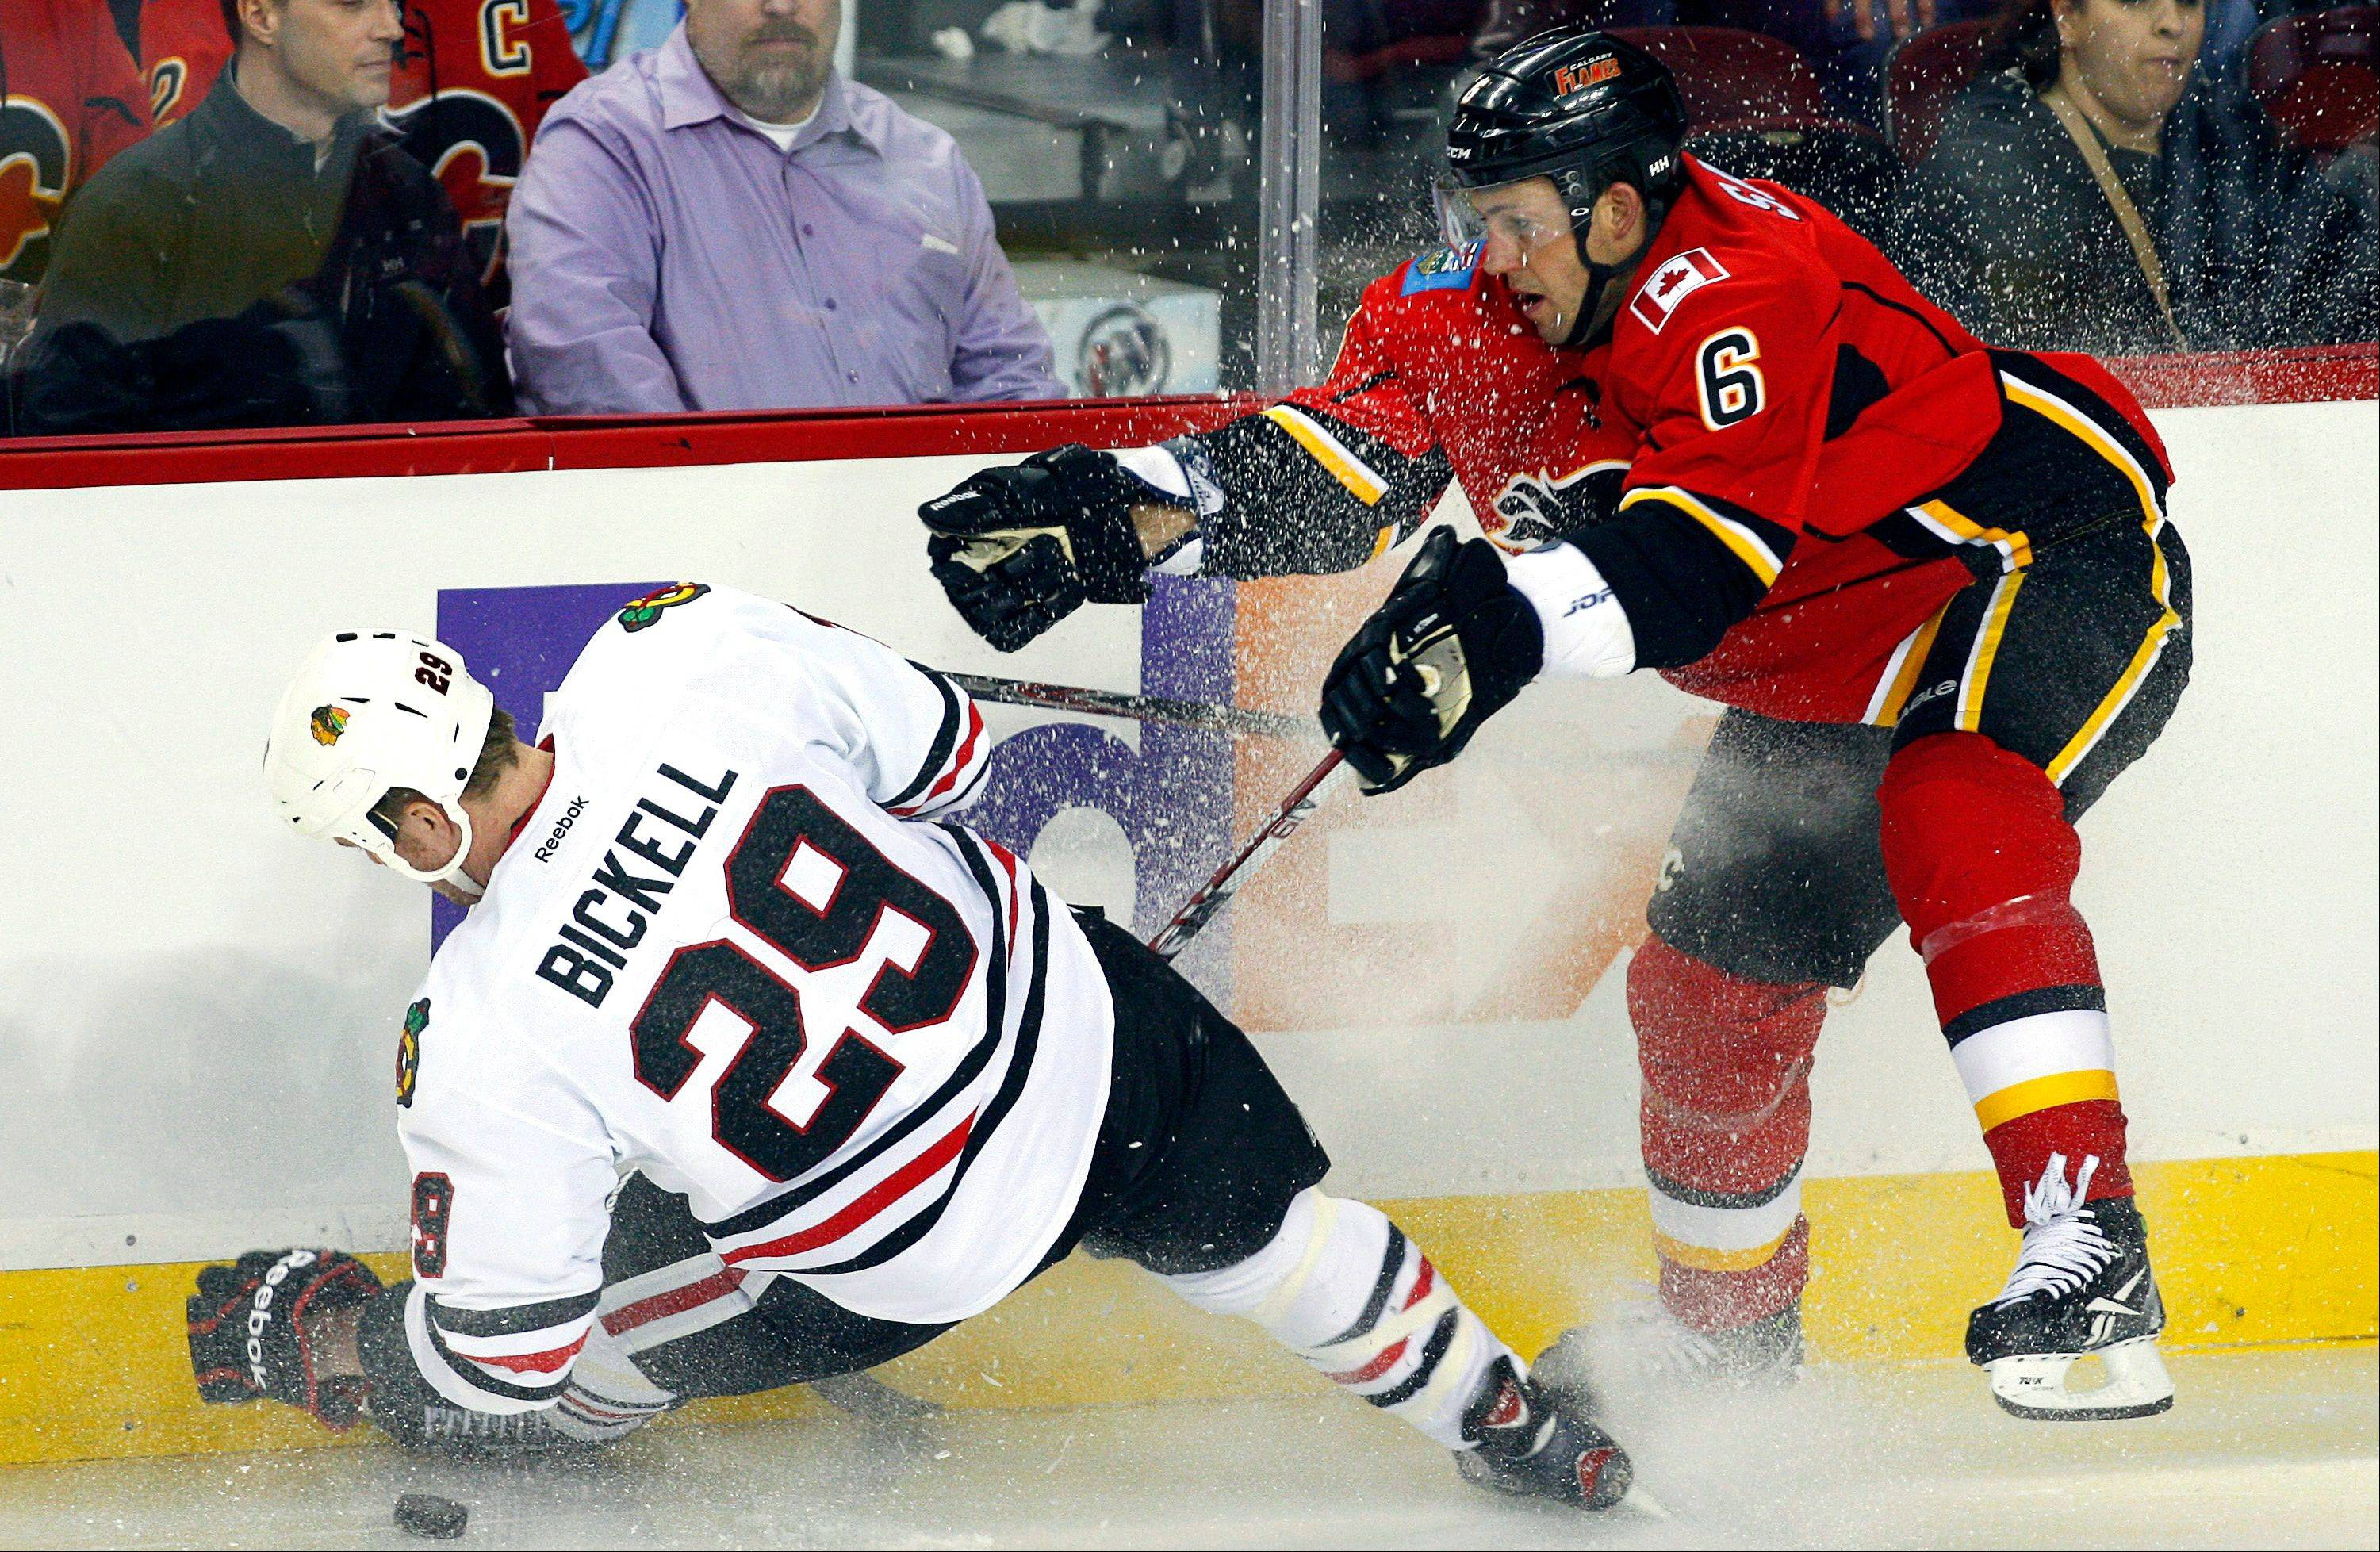 Bryan Bickell is sent to the ice by Calgary's Cory Sarich during the Hawks' loss to the Flames on Friday.